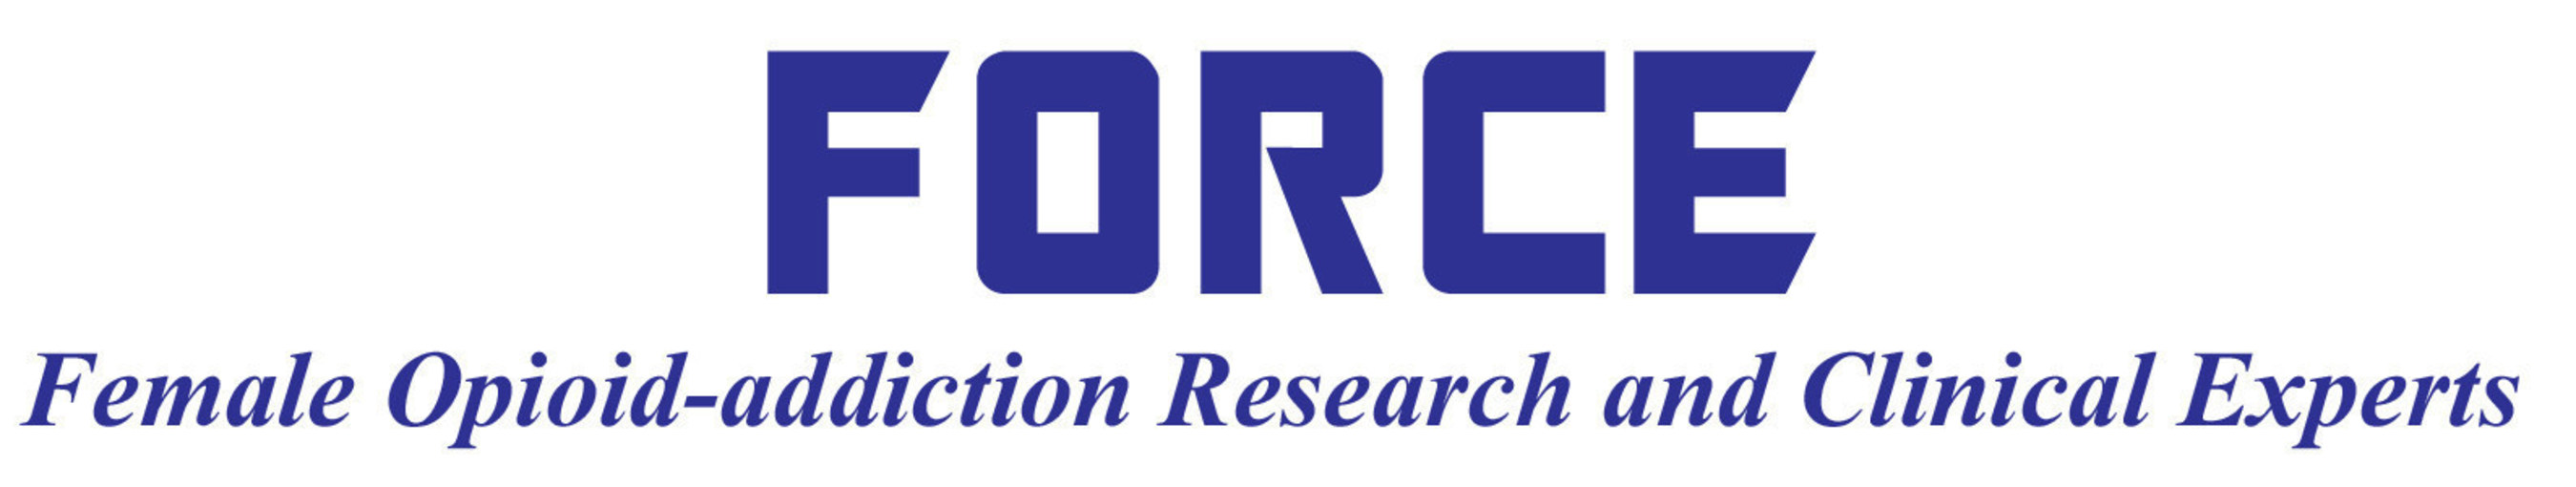 FORCE - Female Opioid-addiction Research and Clinical Experts